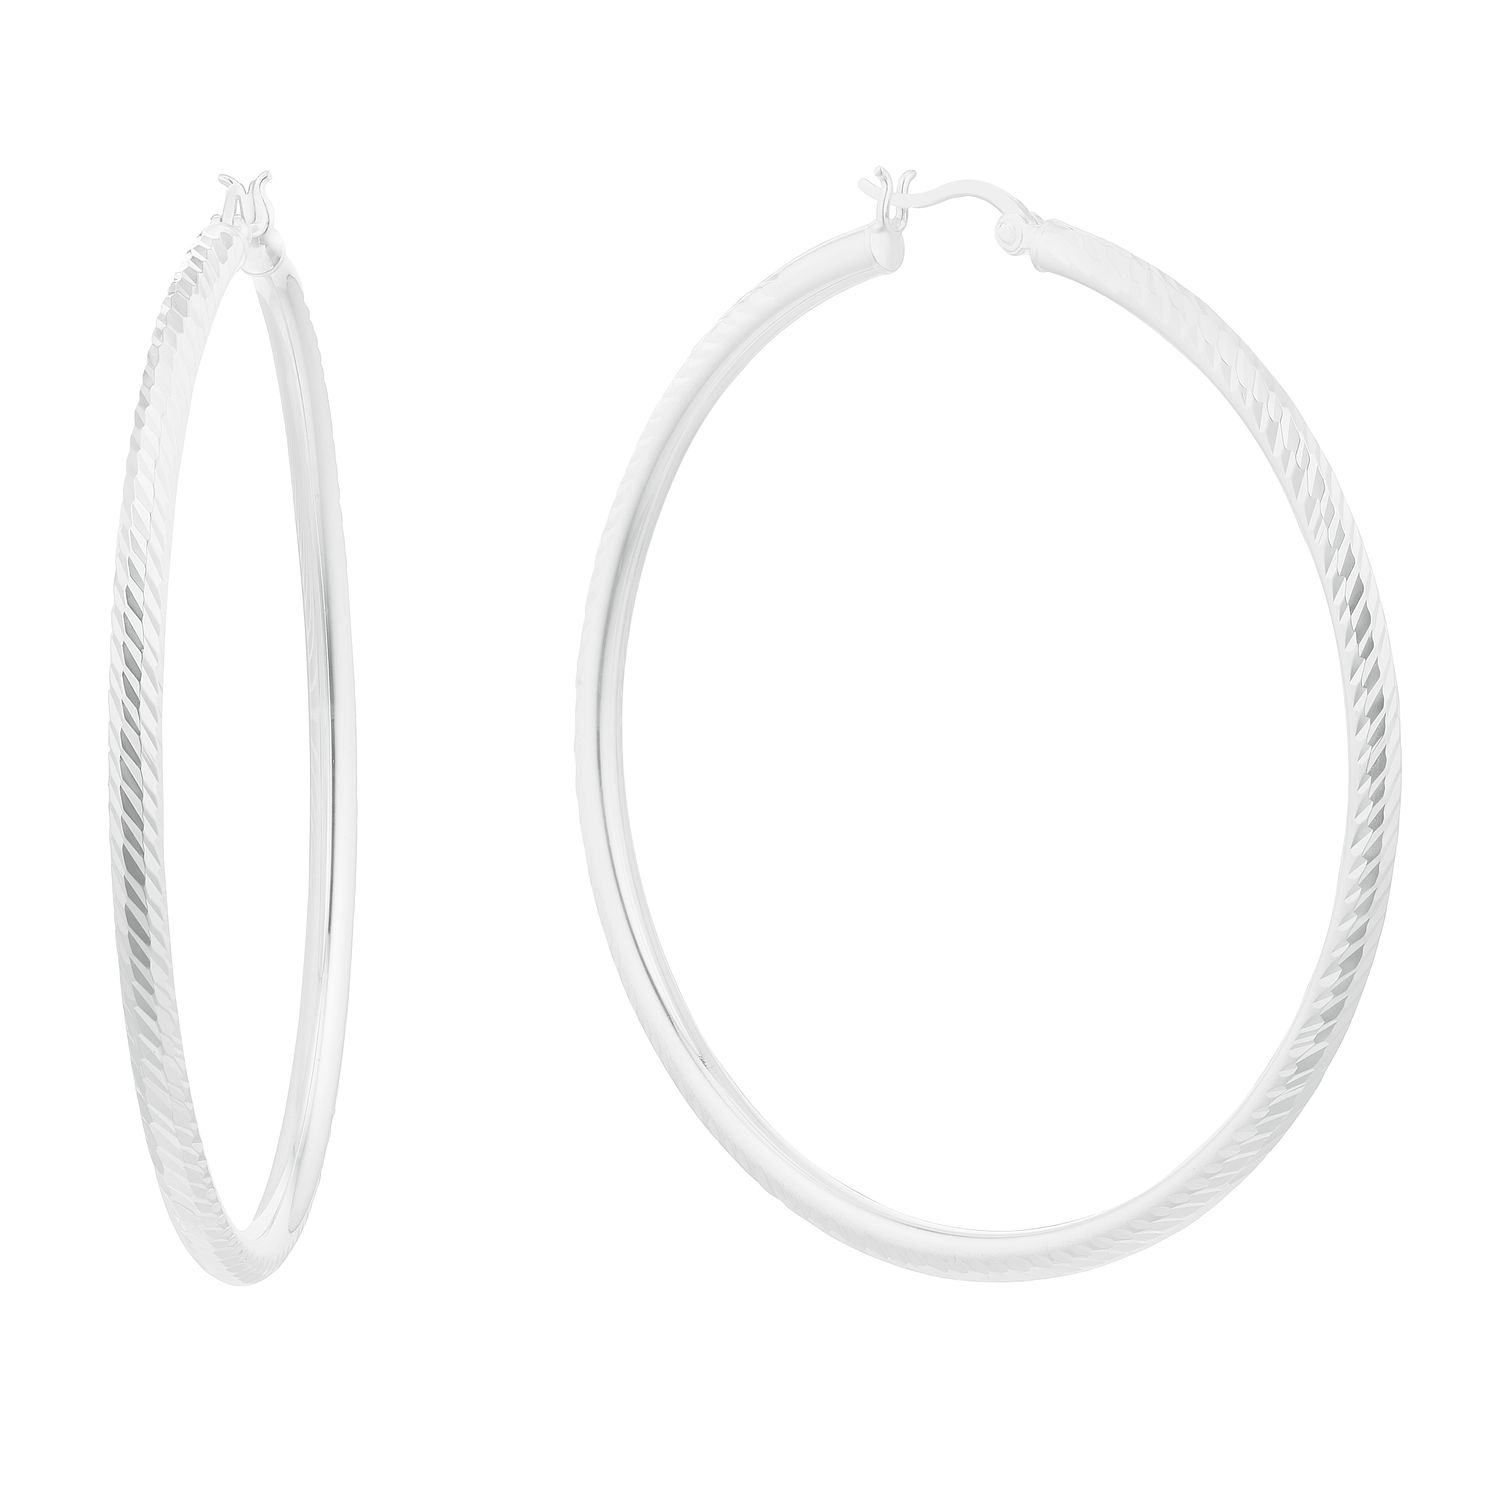 Silver Diamond Cut 55mm Creole Hoop Earrings - Product number 3045552